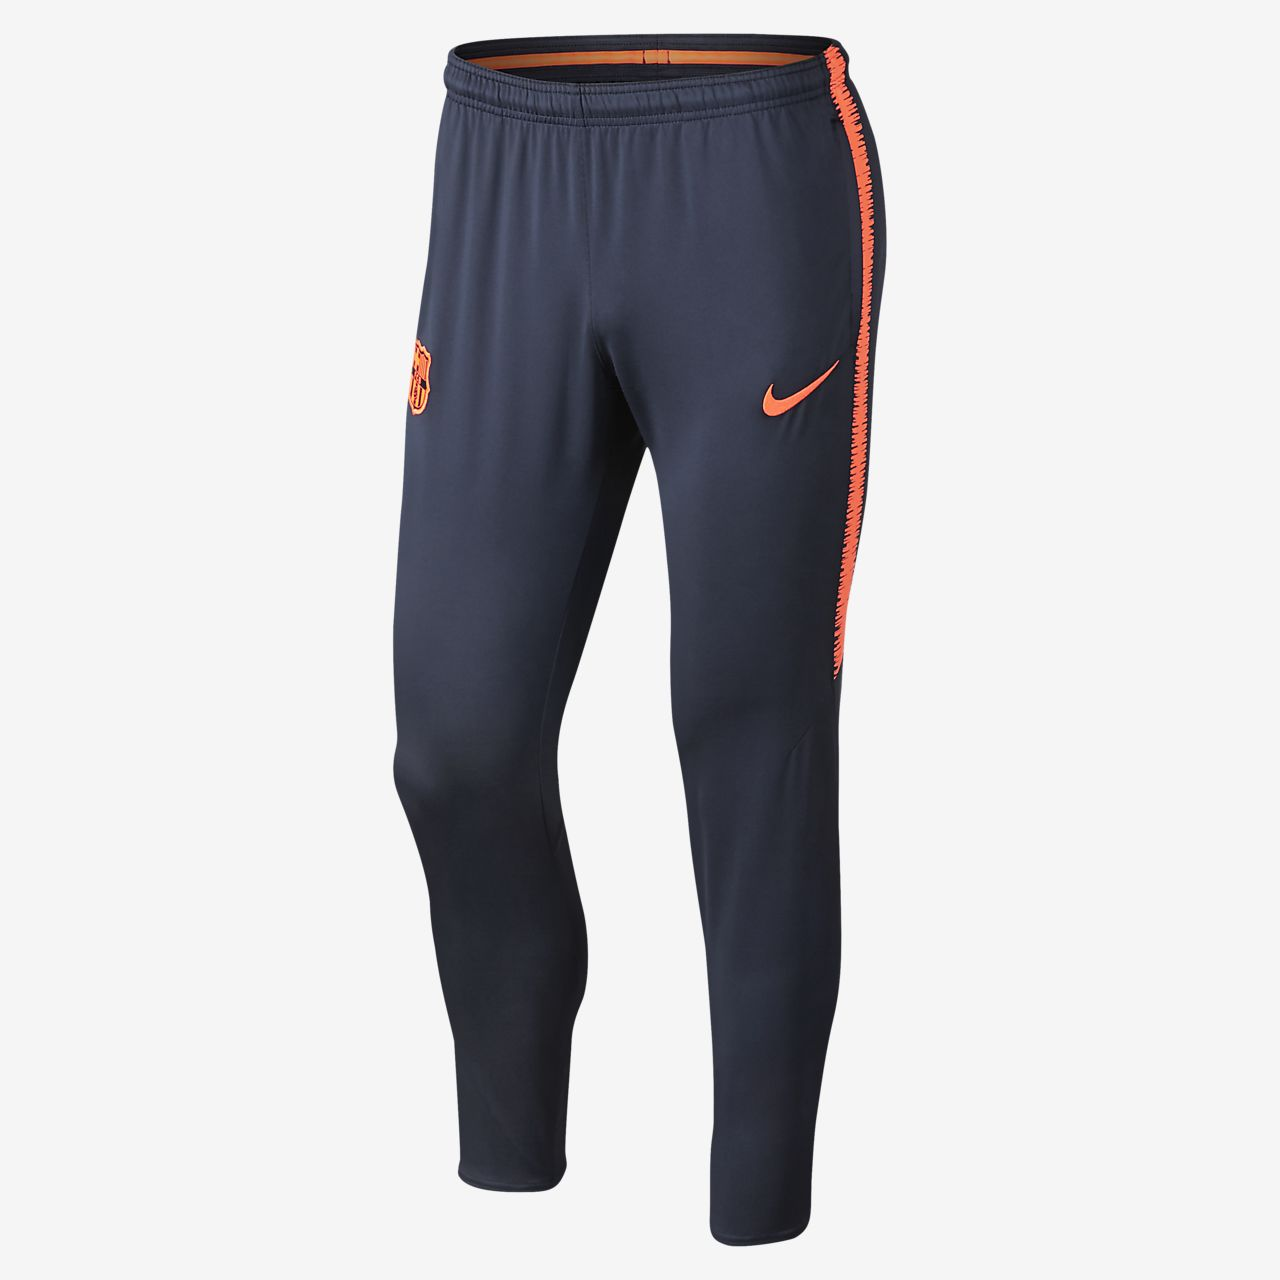 ... FC Barcelona Dri-FIT Squad Men's Football Pants